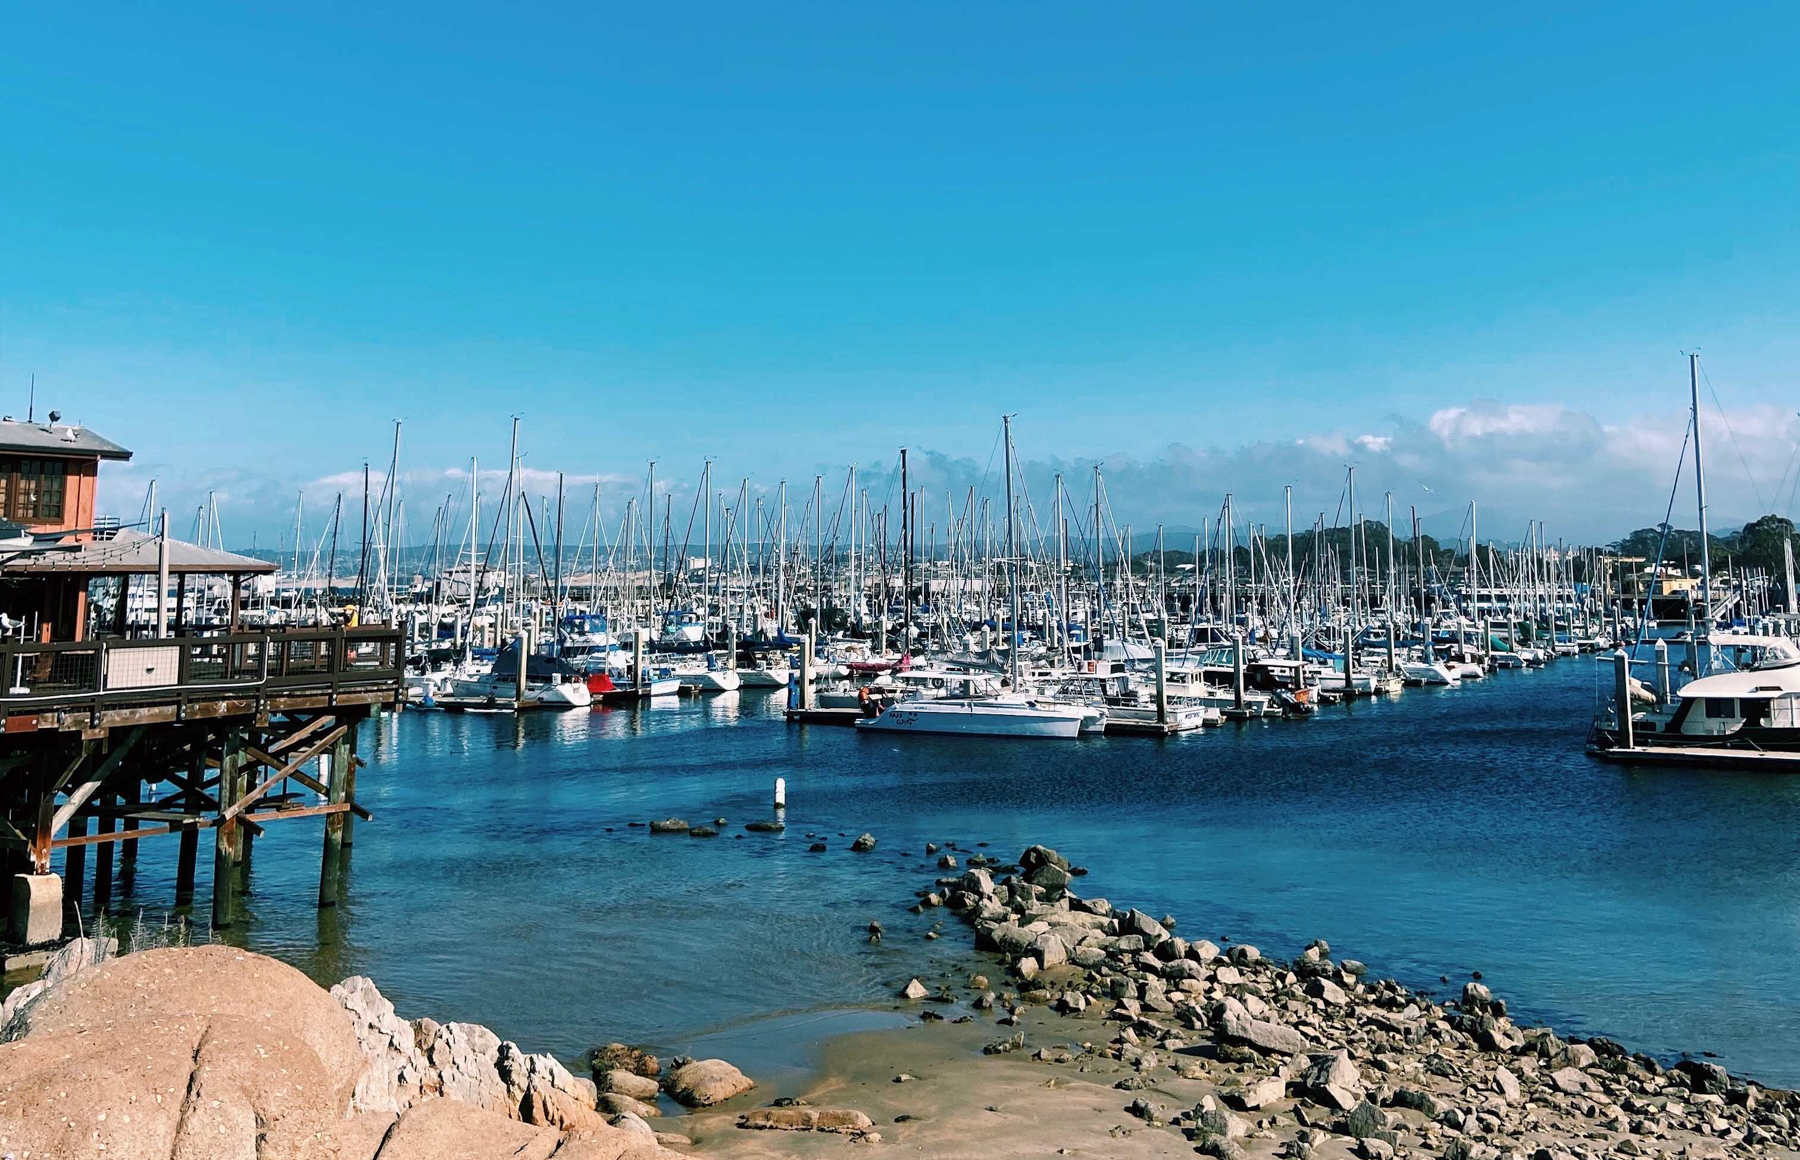 The Clog's guide to a COVID-safe day in Monterey